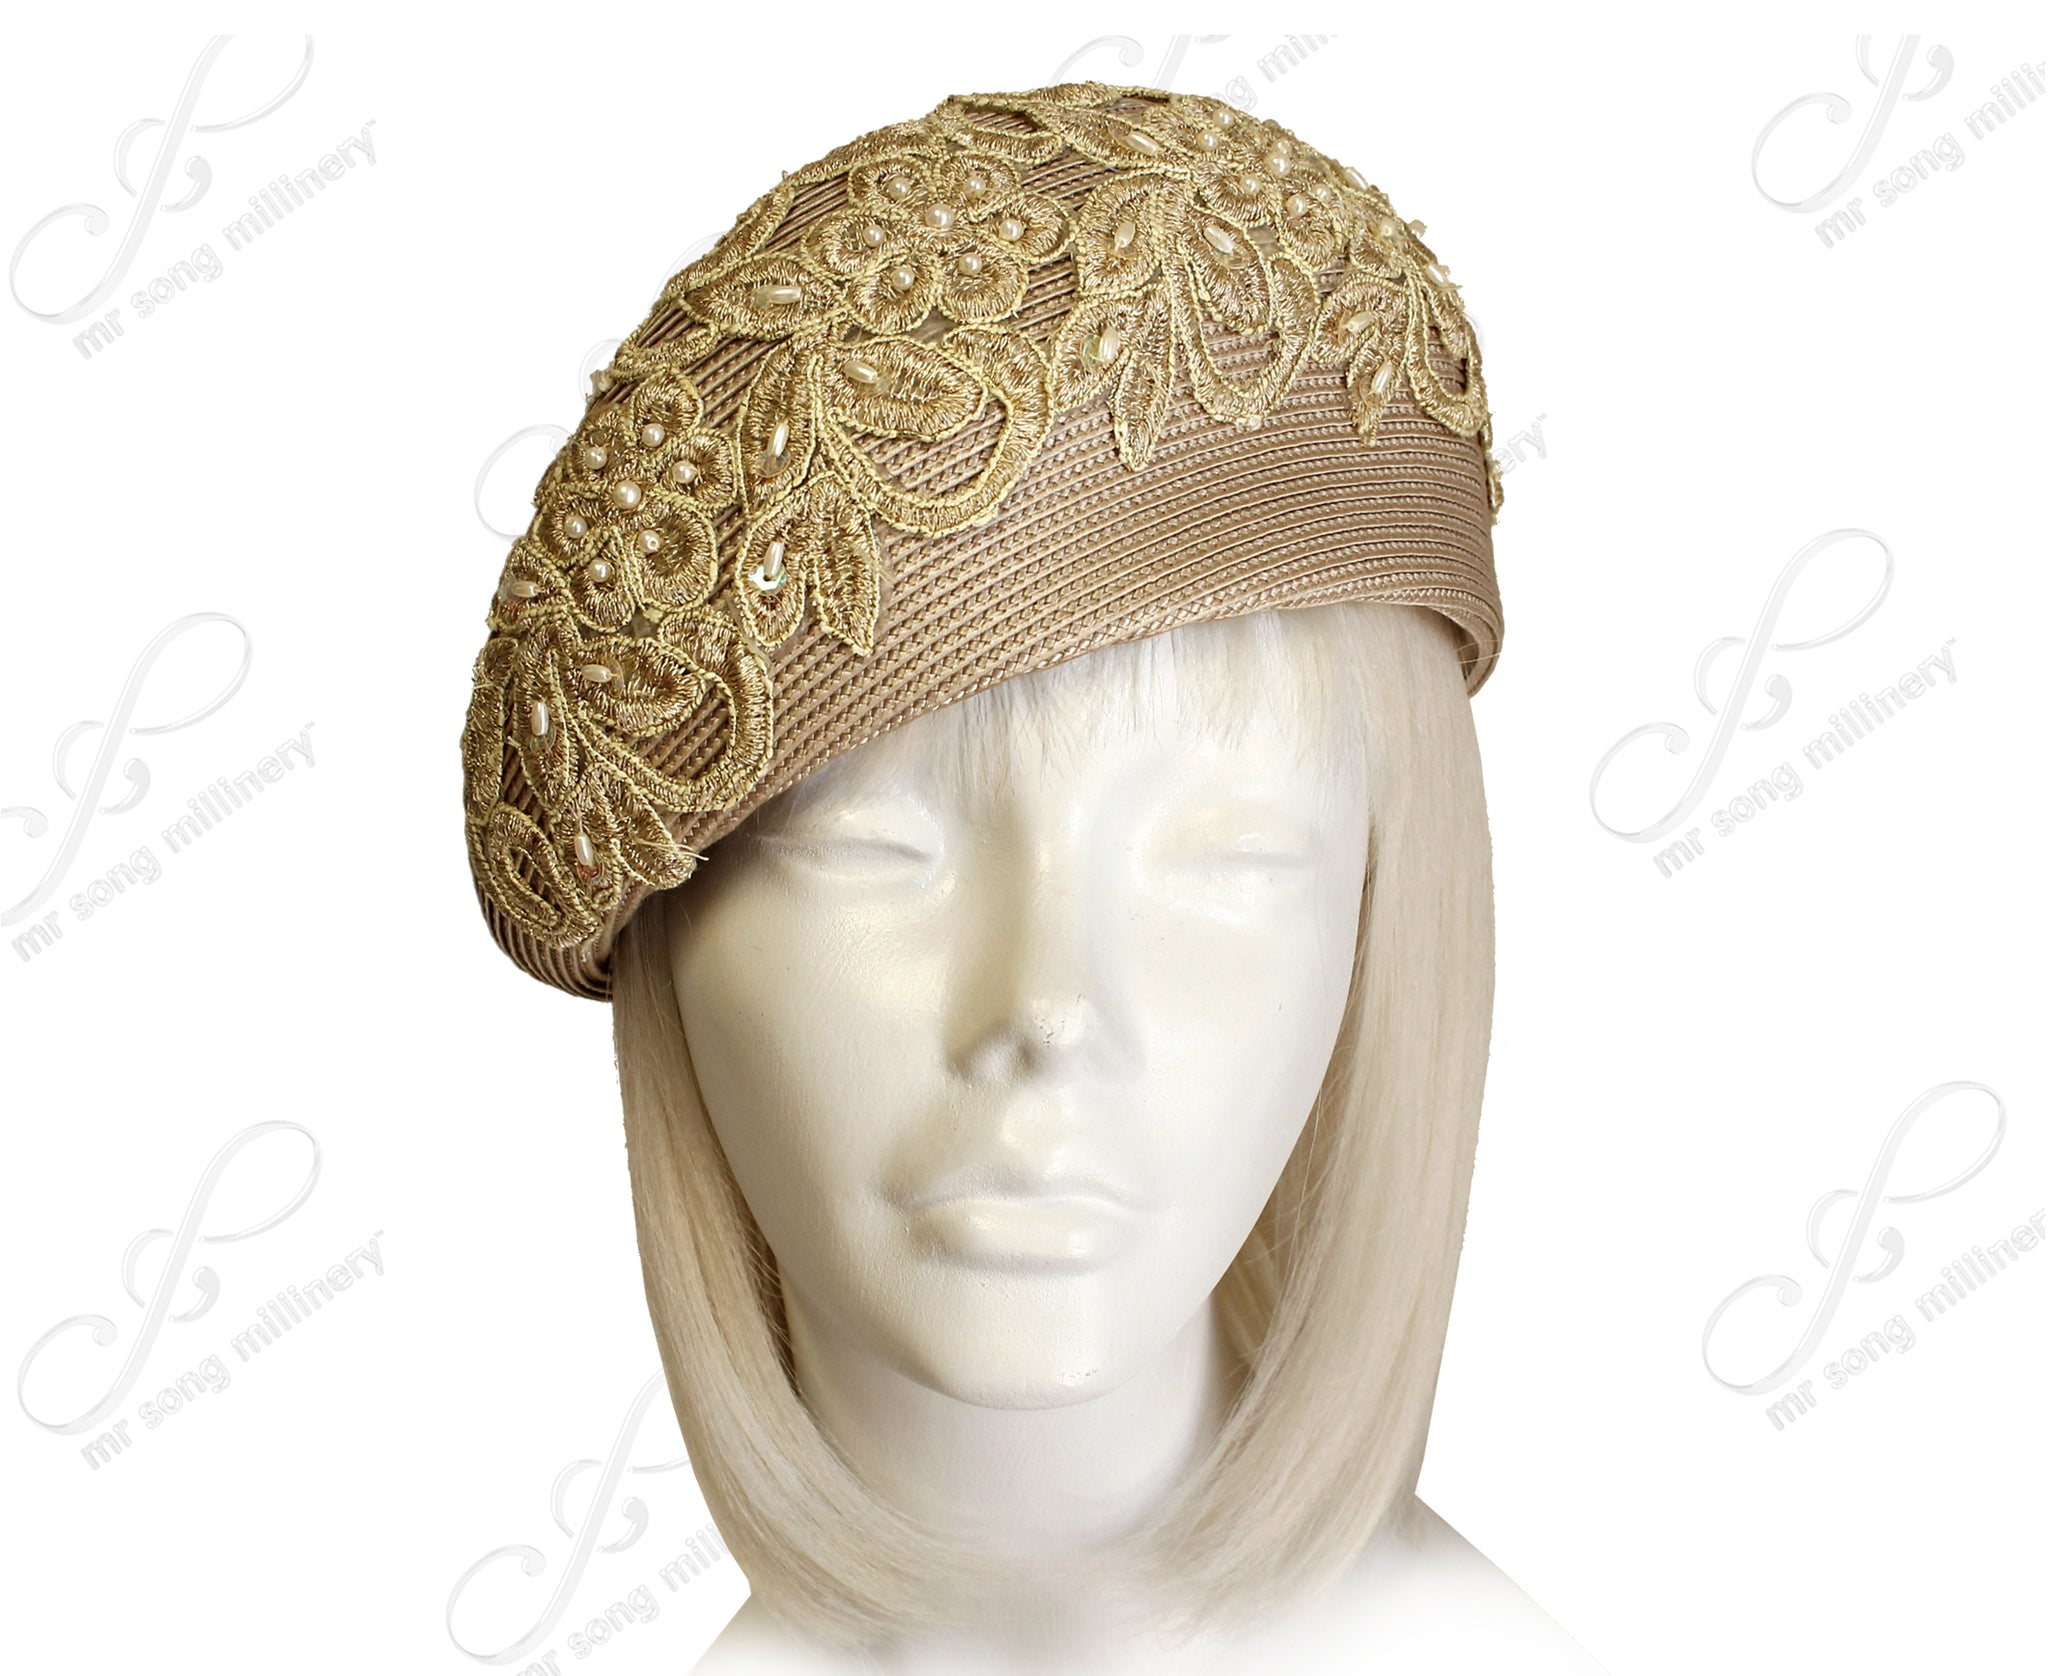 Mr. Song Millinery Straw-Tagline Beret Cloche Hat With Premium Lace - Assorted Colors